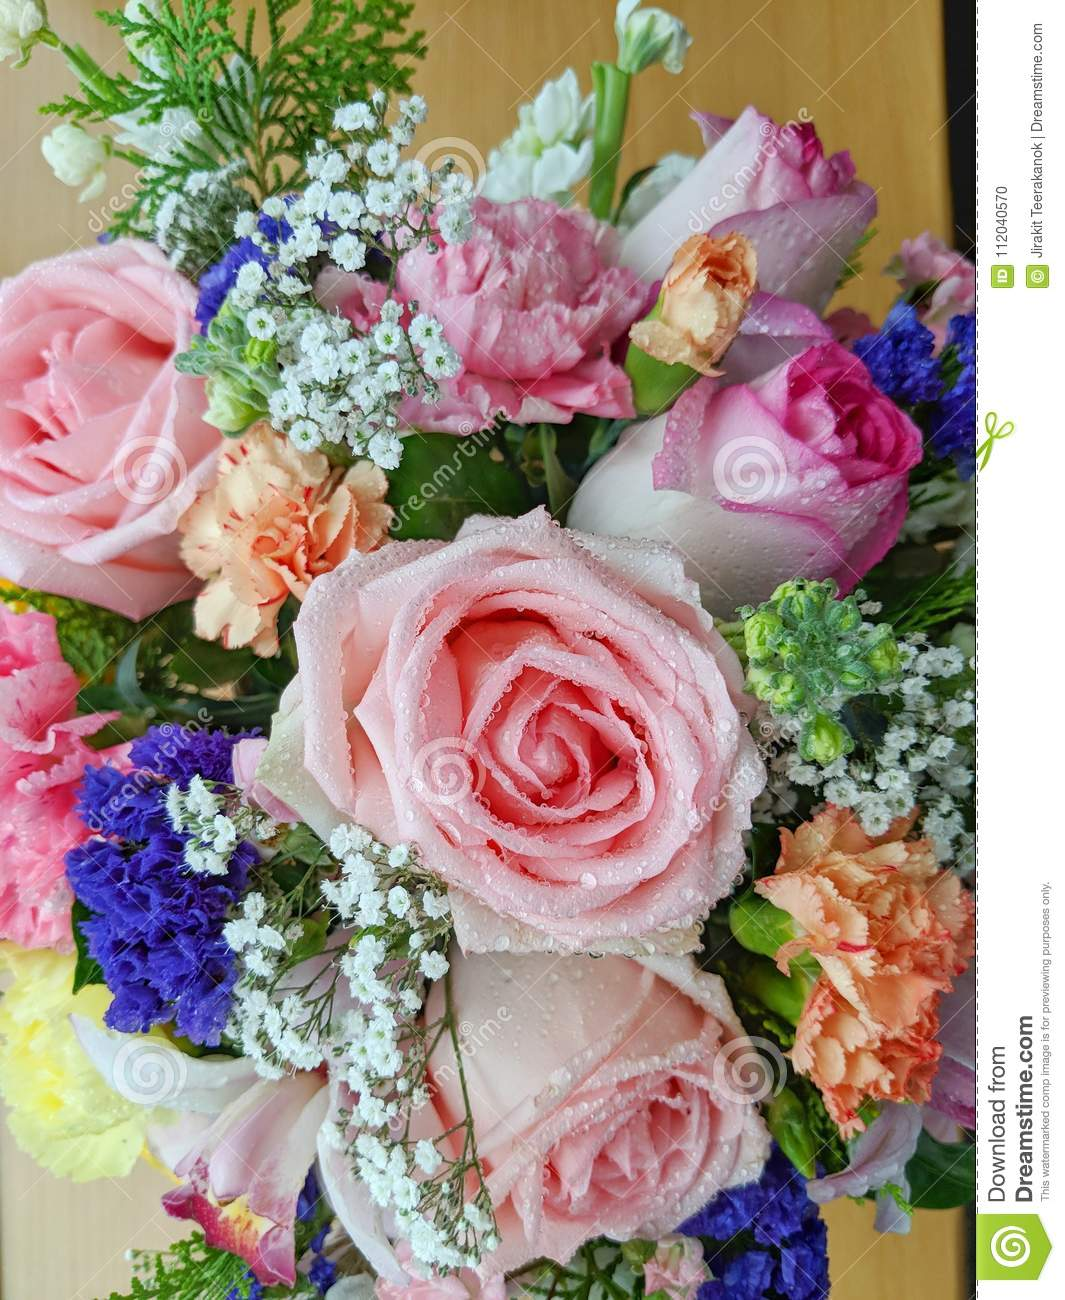 Close Up Photo Of Pink Flower Bouquet On A Wooden Board The